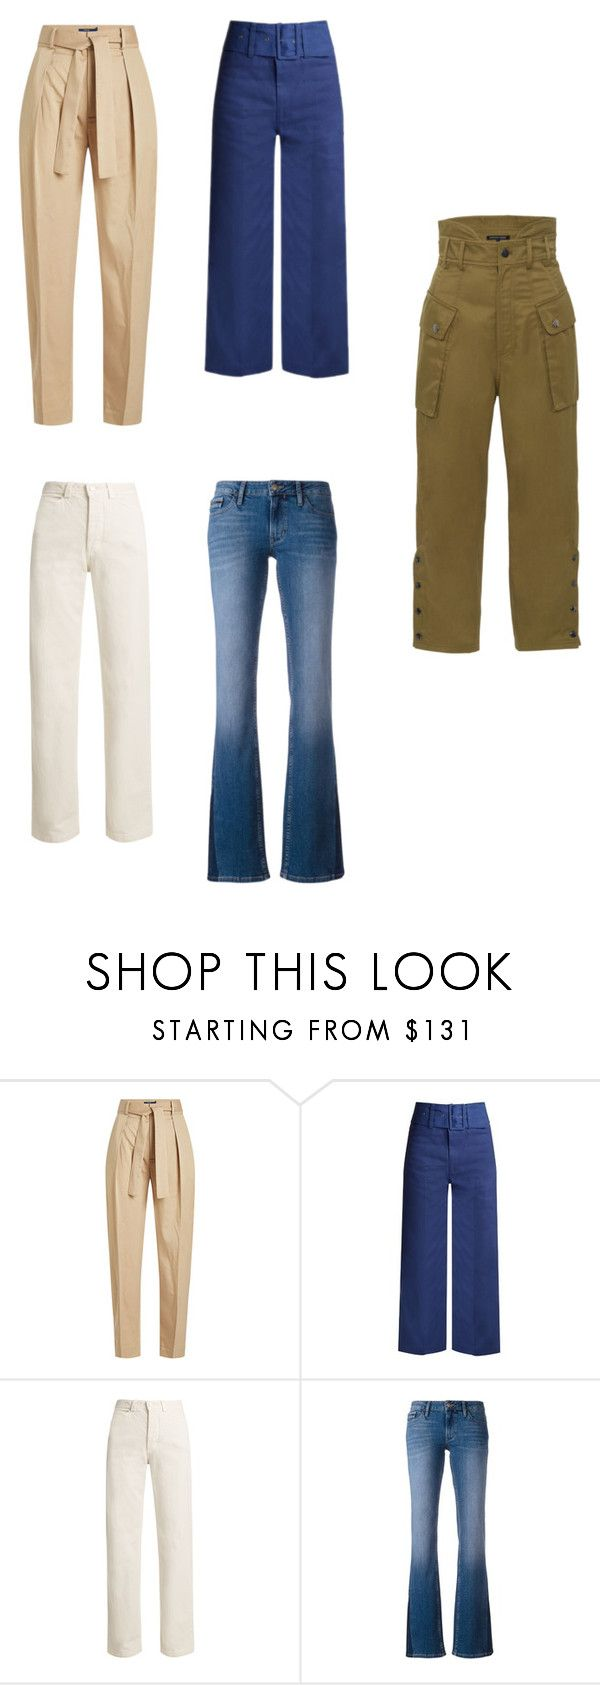 """""""hourglass pants"""" by elatralala ❤ liked on Polyvore featuring Polo Ralph Lauren, Sea, New York, Rachel Comey, Calvin Klein Jeans and Marissa Webb"""